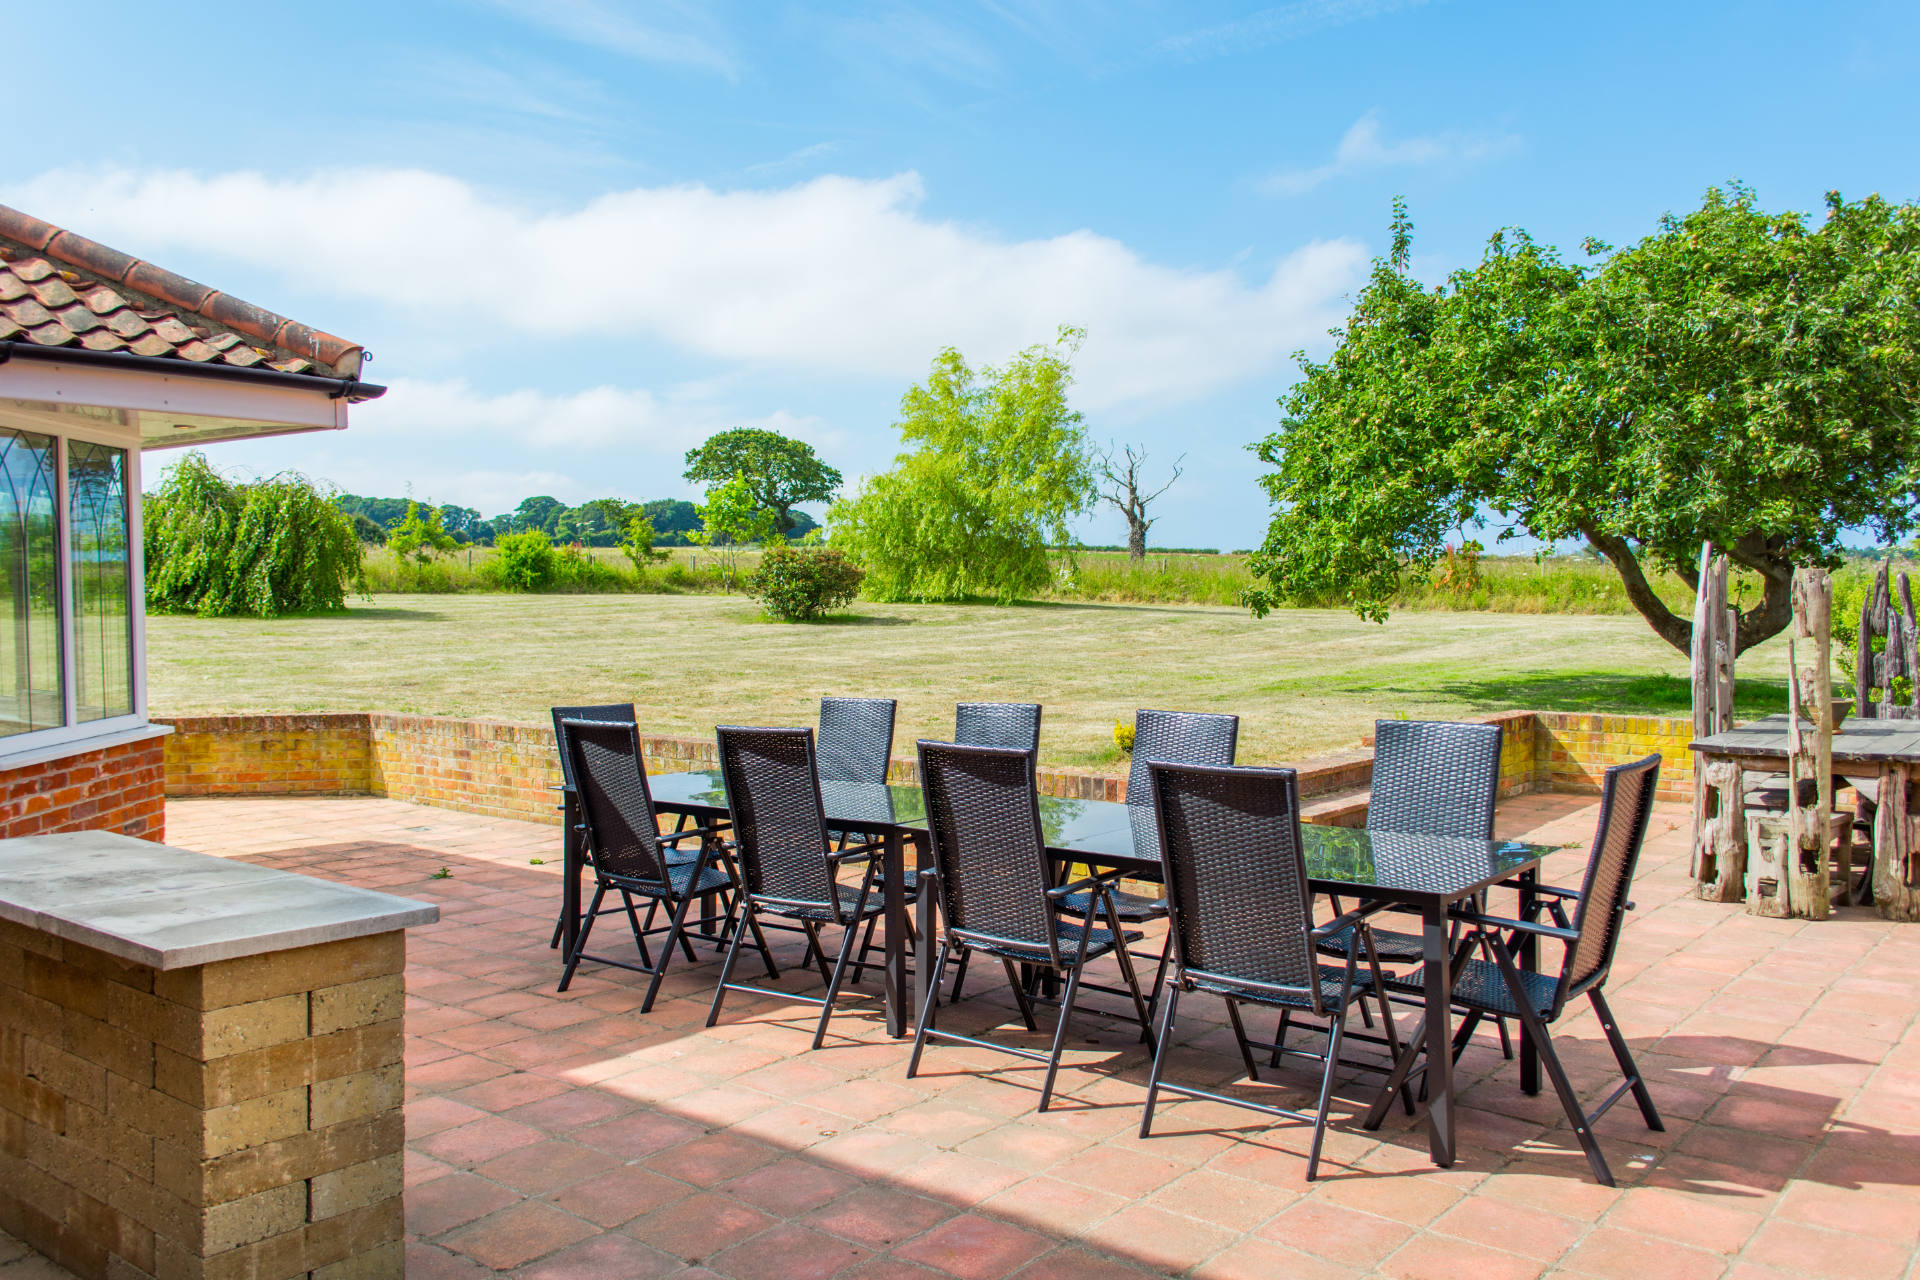 Outside patio and dining area with garden and countryside views.